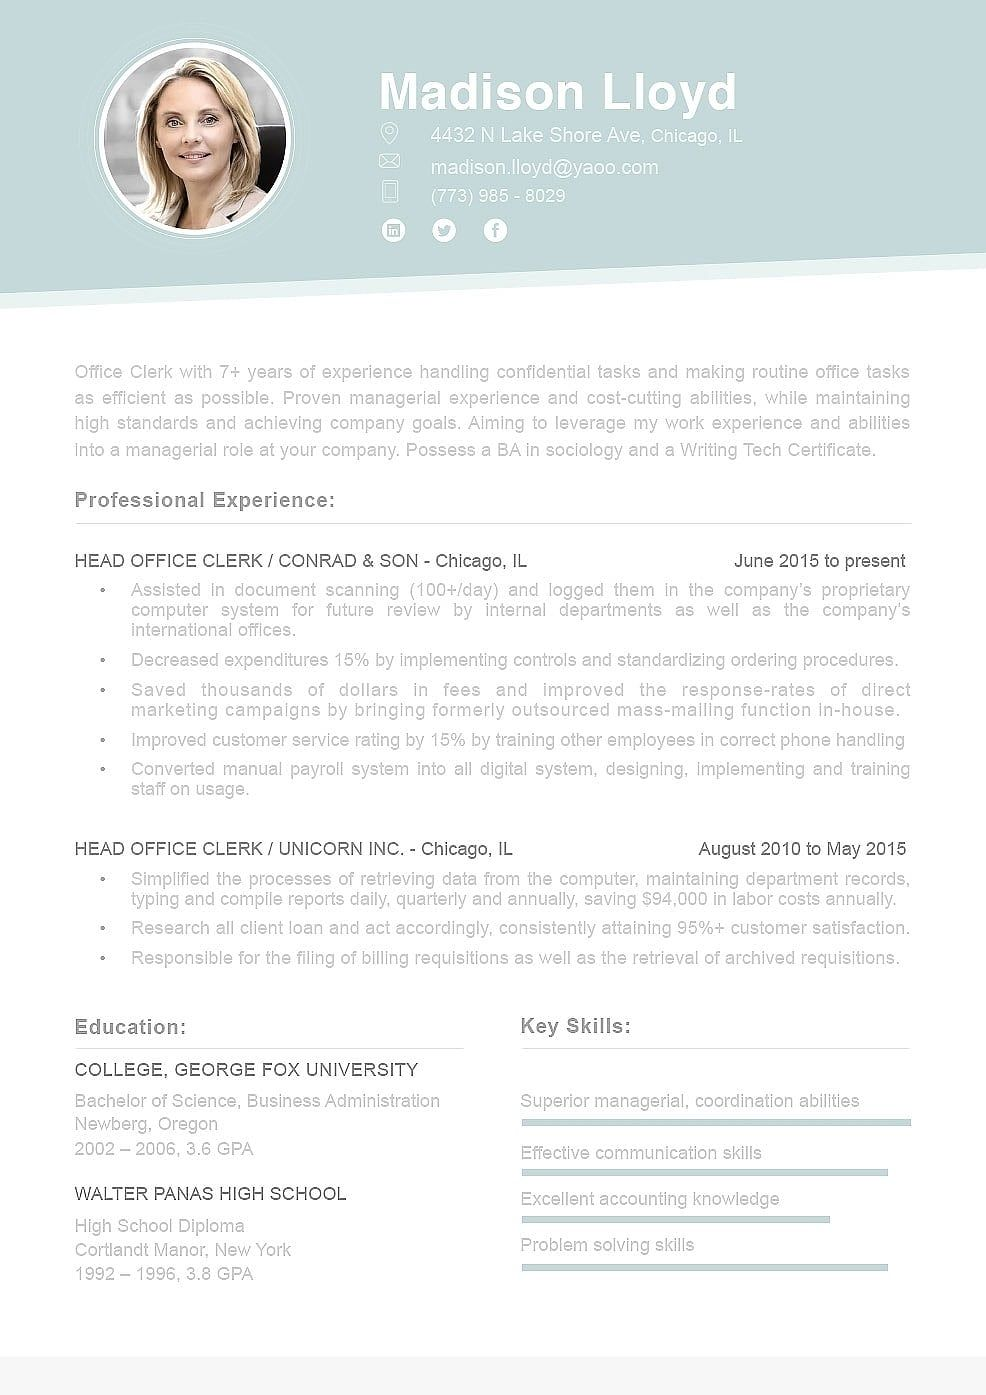 Resume Template 110690 (With images) Resume examples